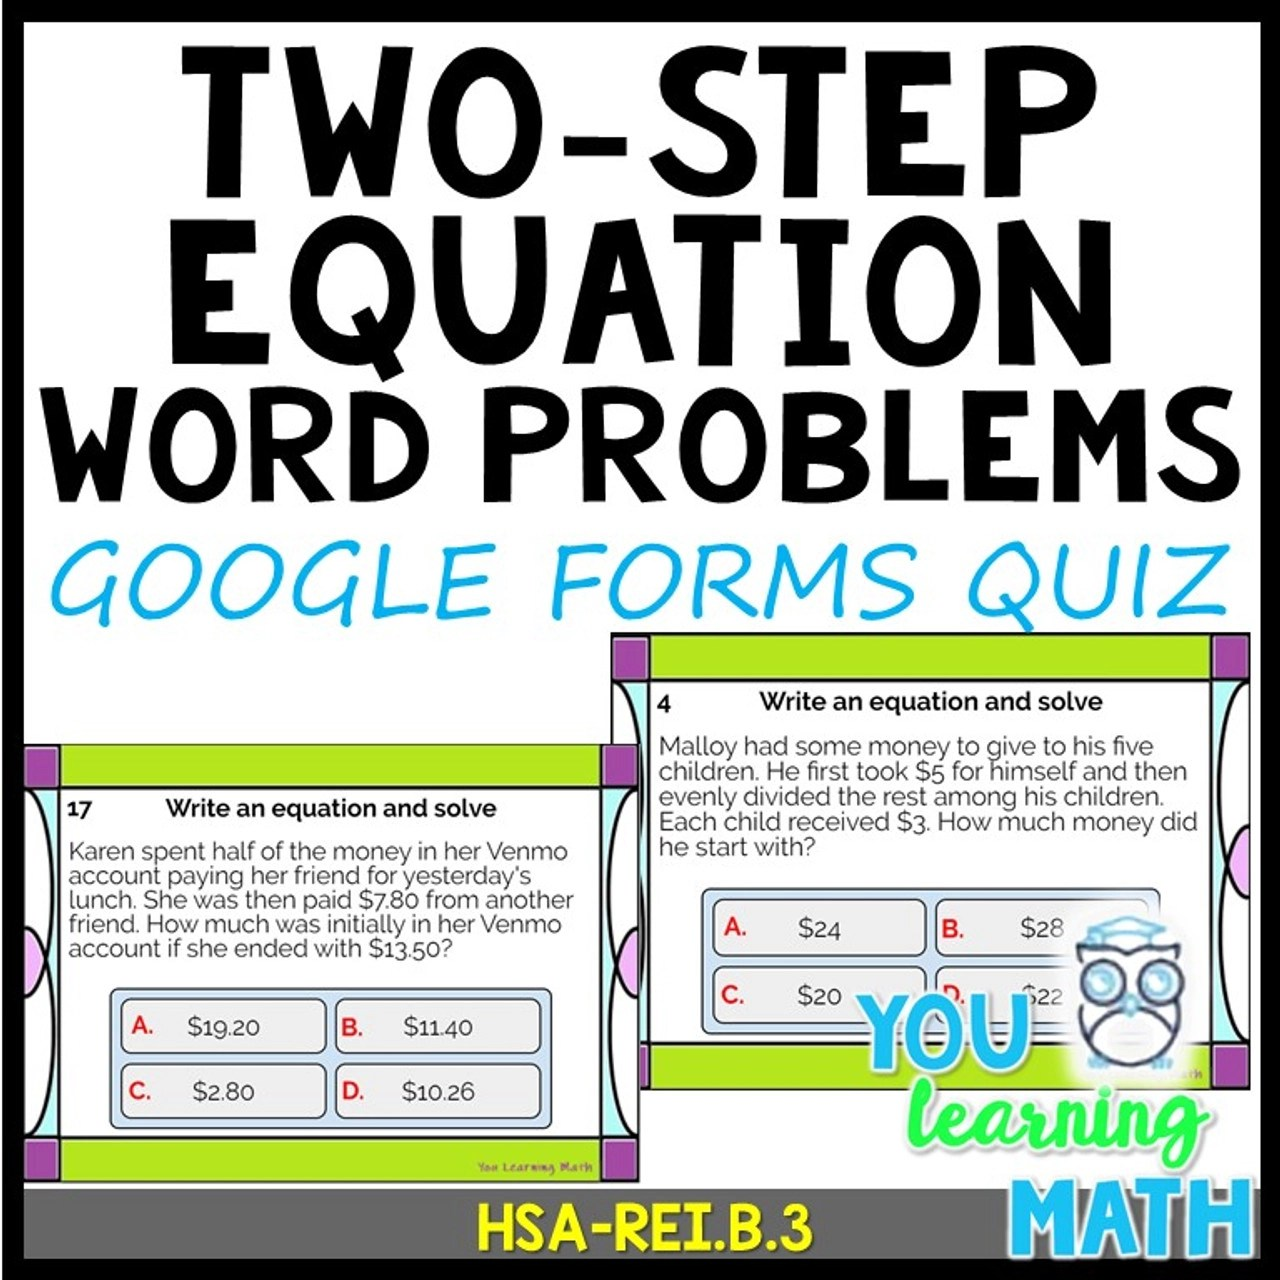 medium resolution of Two-Step Equation Word Problems: Google Forms Quiz - 20 Problems - Amped Up  Learning